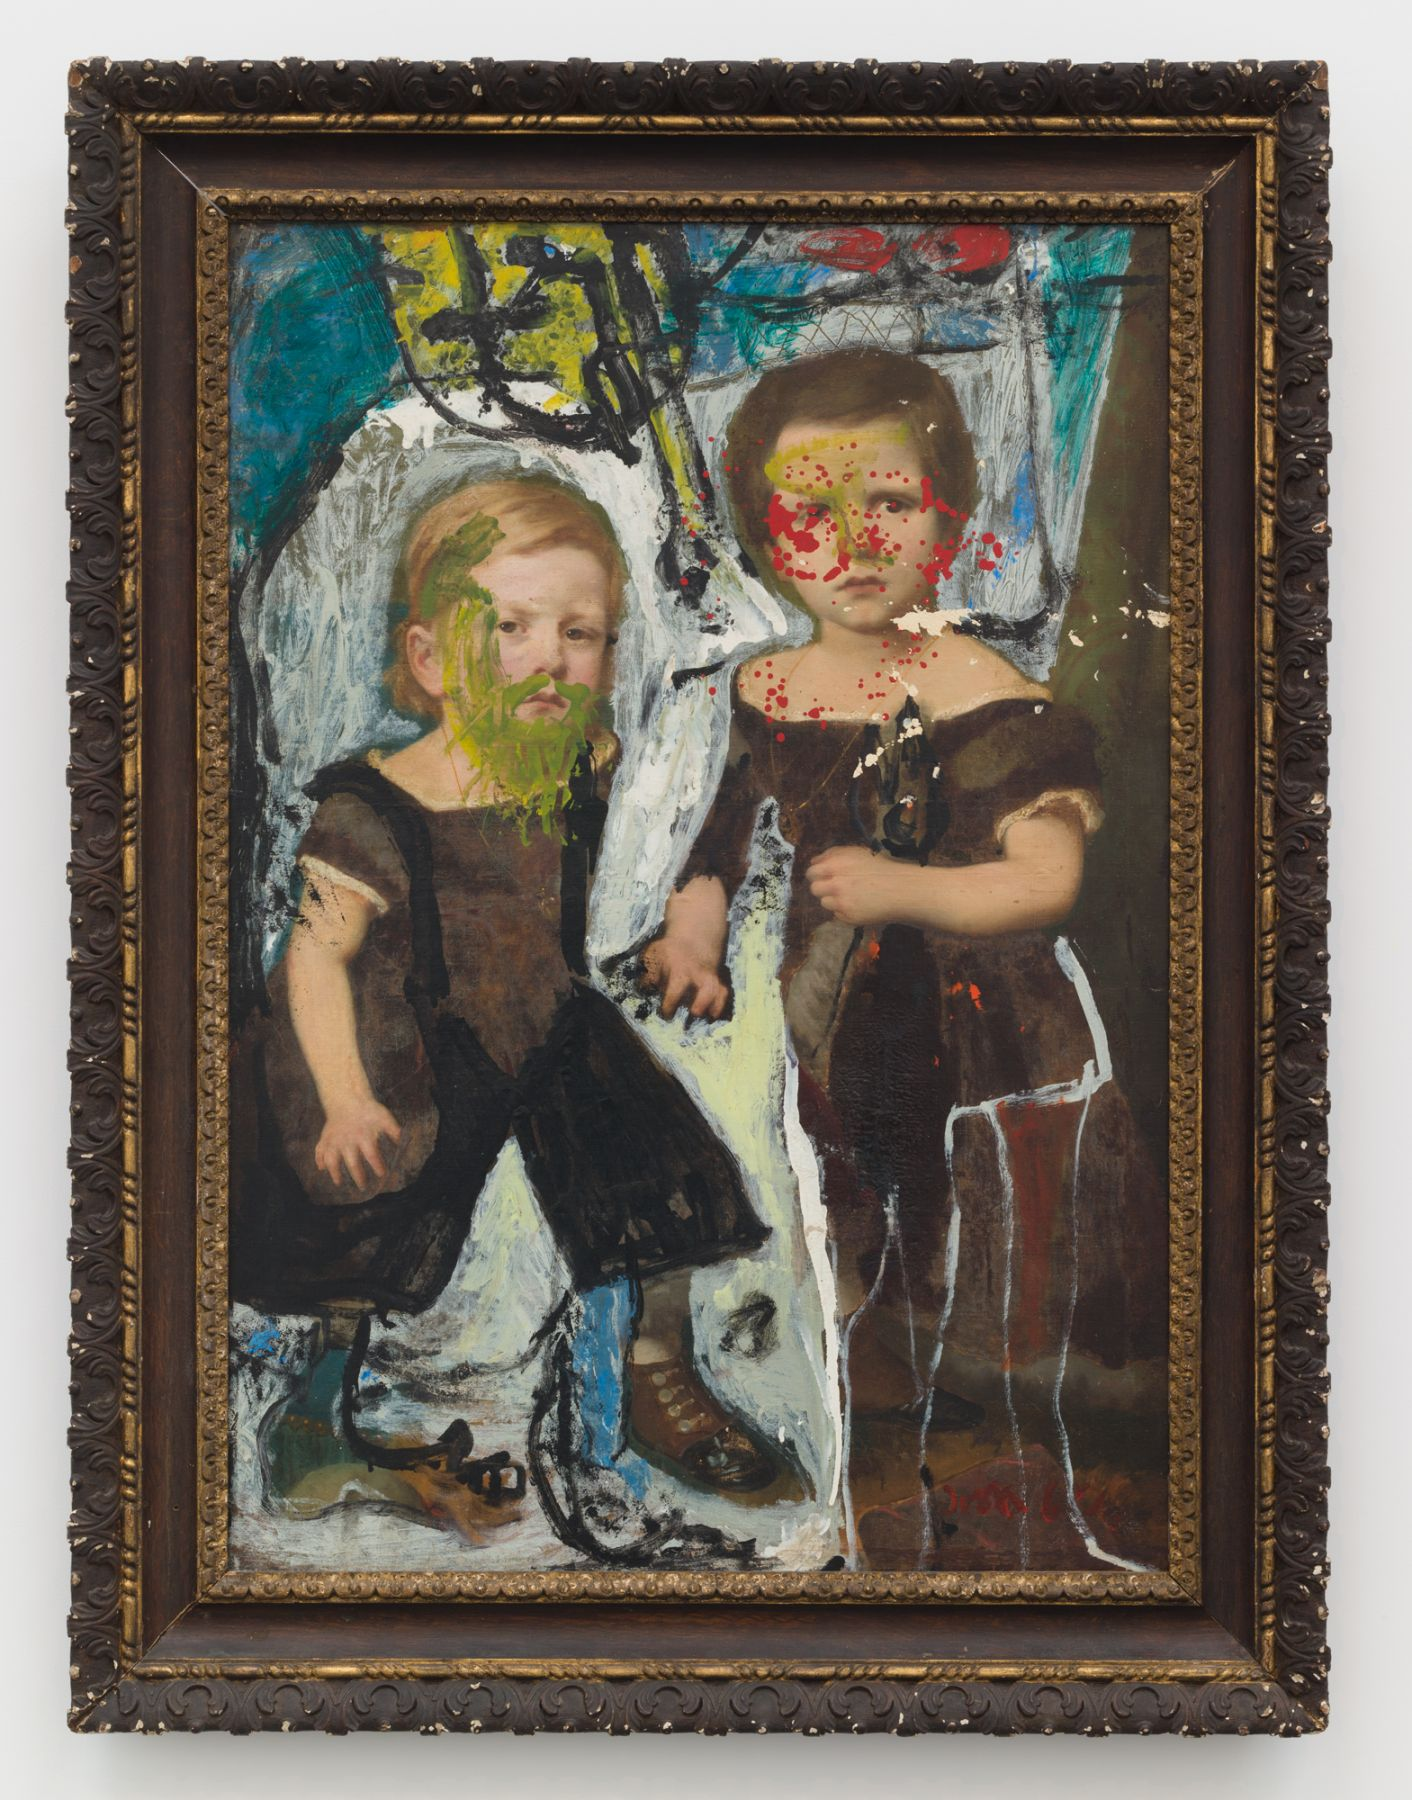 Asger Jorn, Brotherhood Above All (Fraternité avant tout)